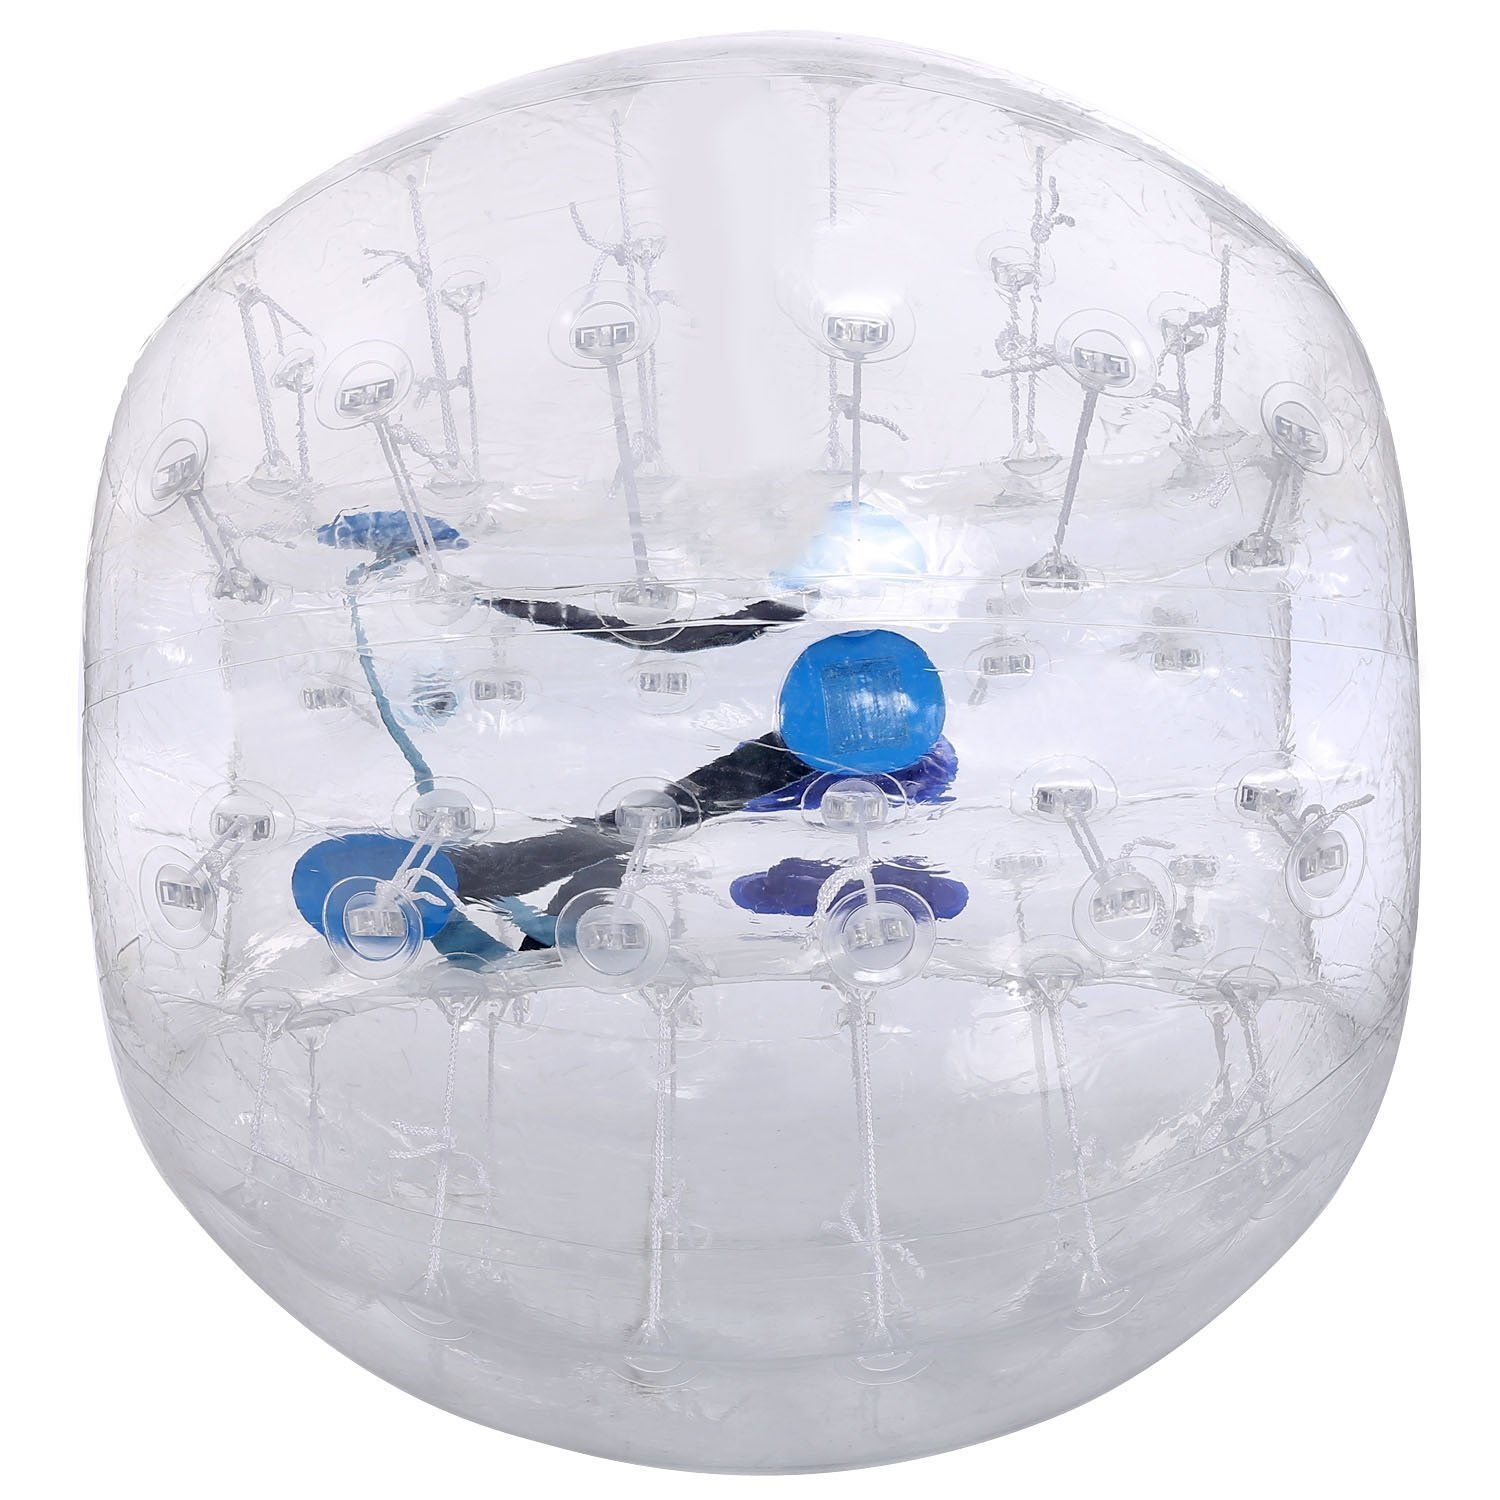 Anfan 1.2~1.5M Inflatable Bumper Ball 25.6 in Diameter Bubble Soccer Ball Transparent Material Human Knocker Ball Zorb Ball for Adults and Child (Transparent, 1.2M) by Anfan